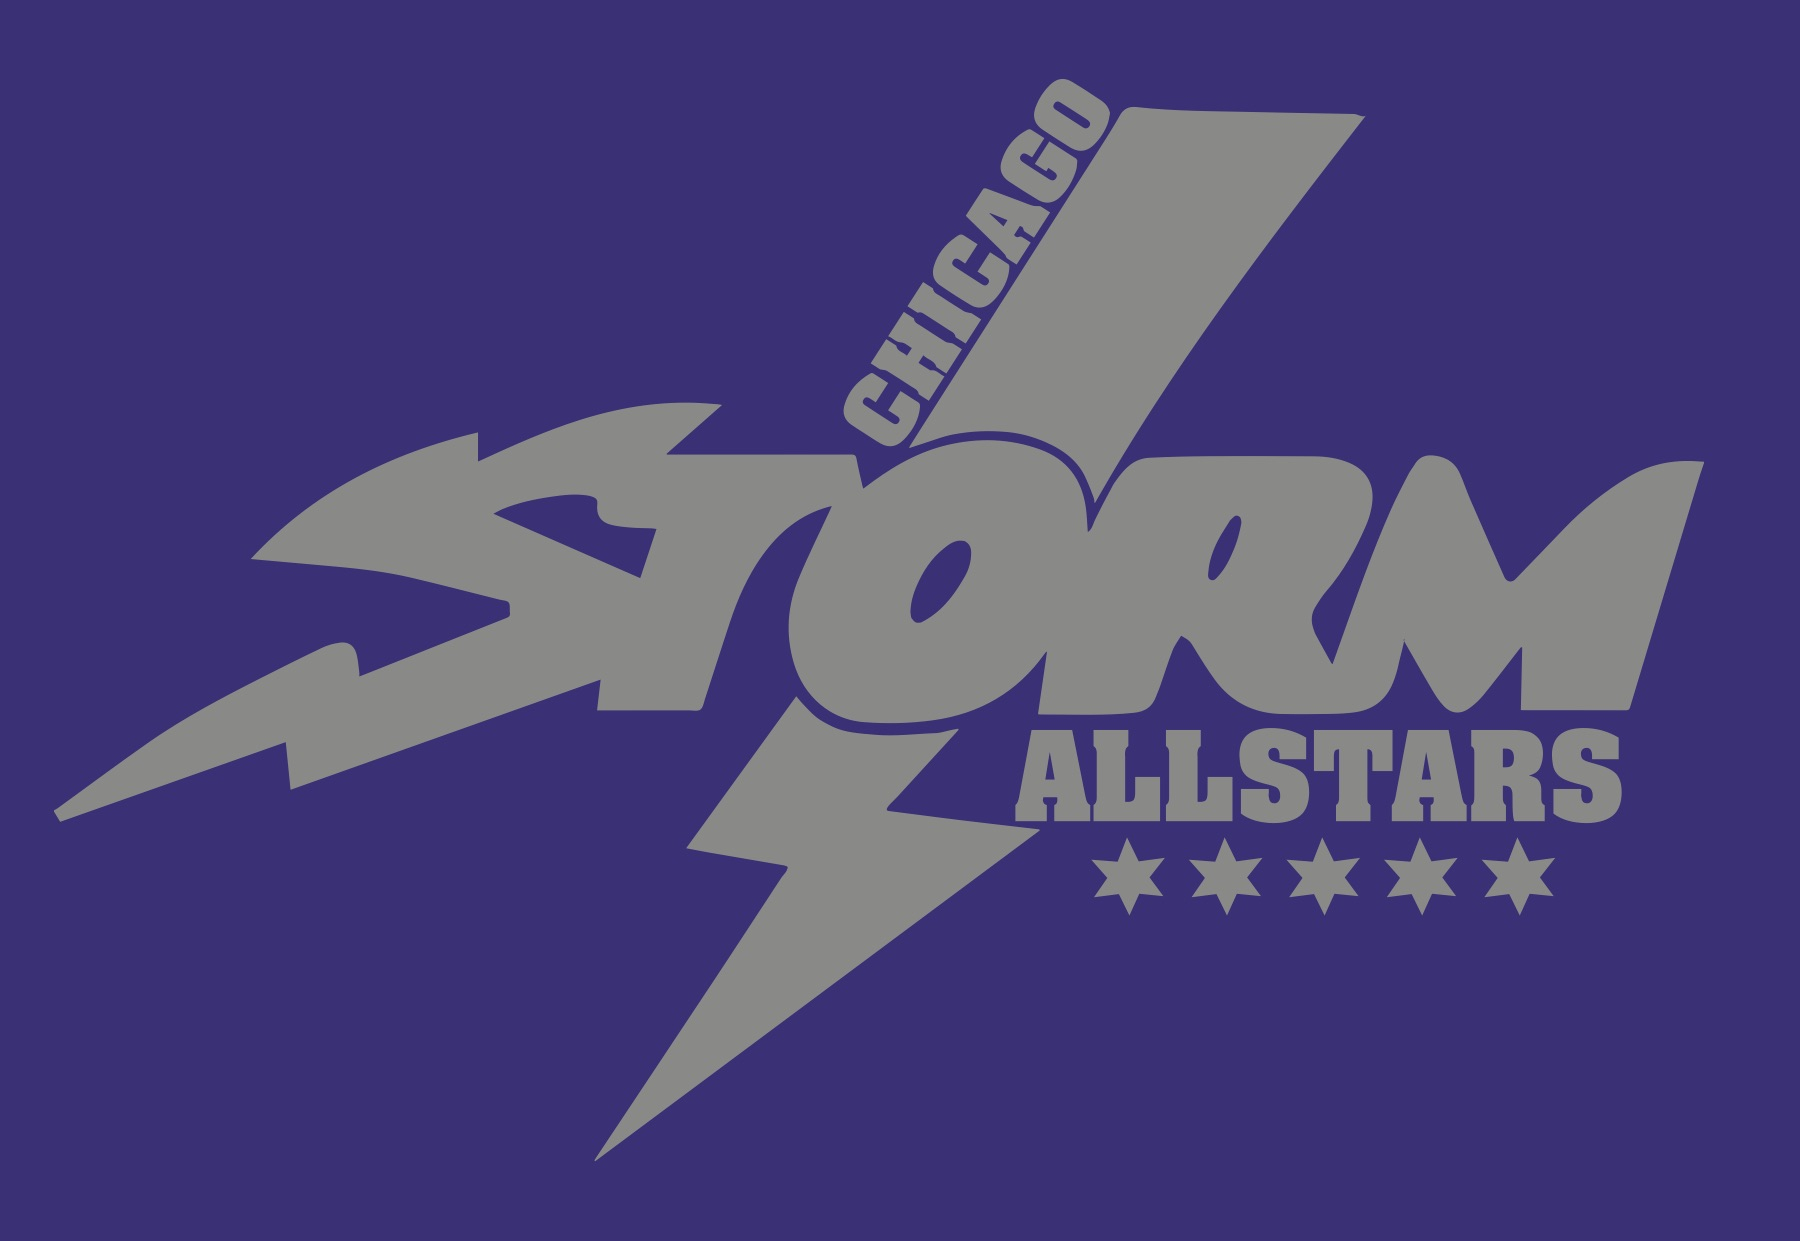 Chicago Storm All-Star Elite